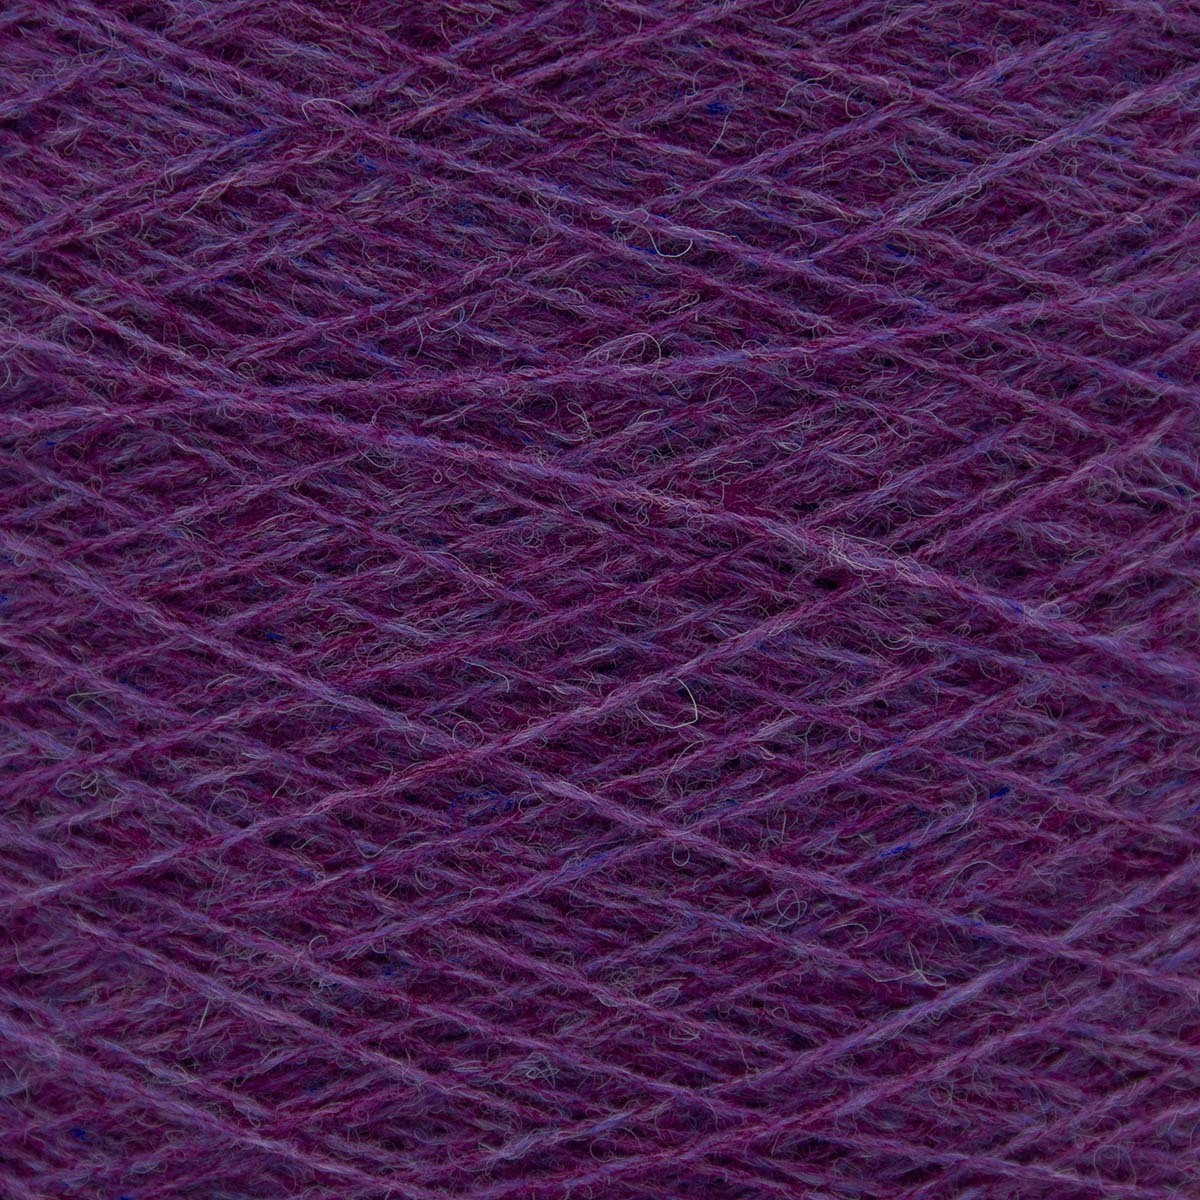 Knoll Yarns Supersoft - 426